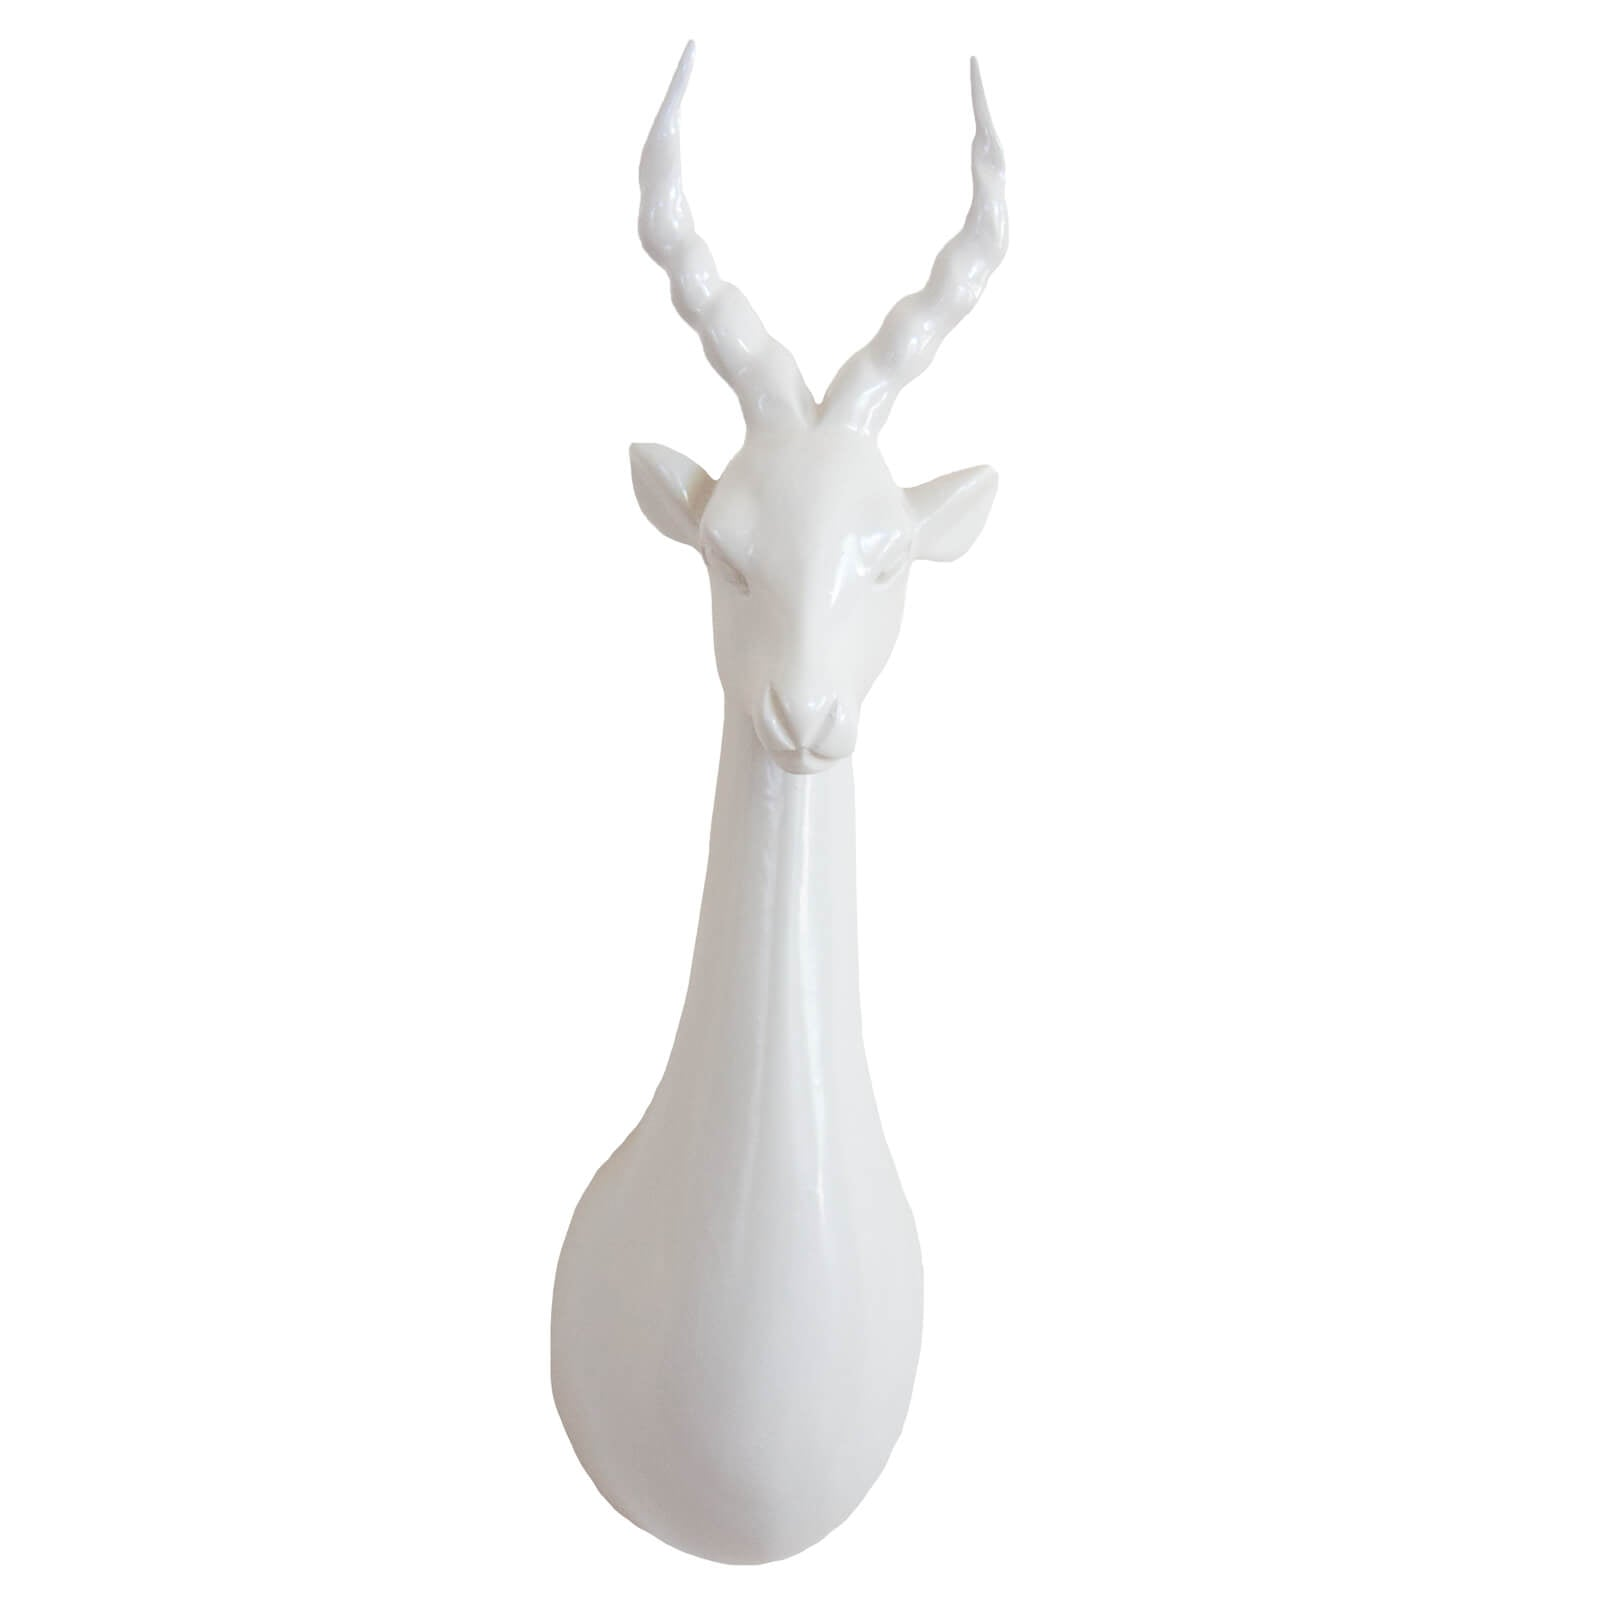 Impala Head Trophy Wall Decor - Misty Grey